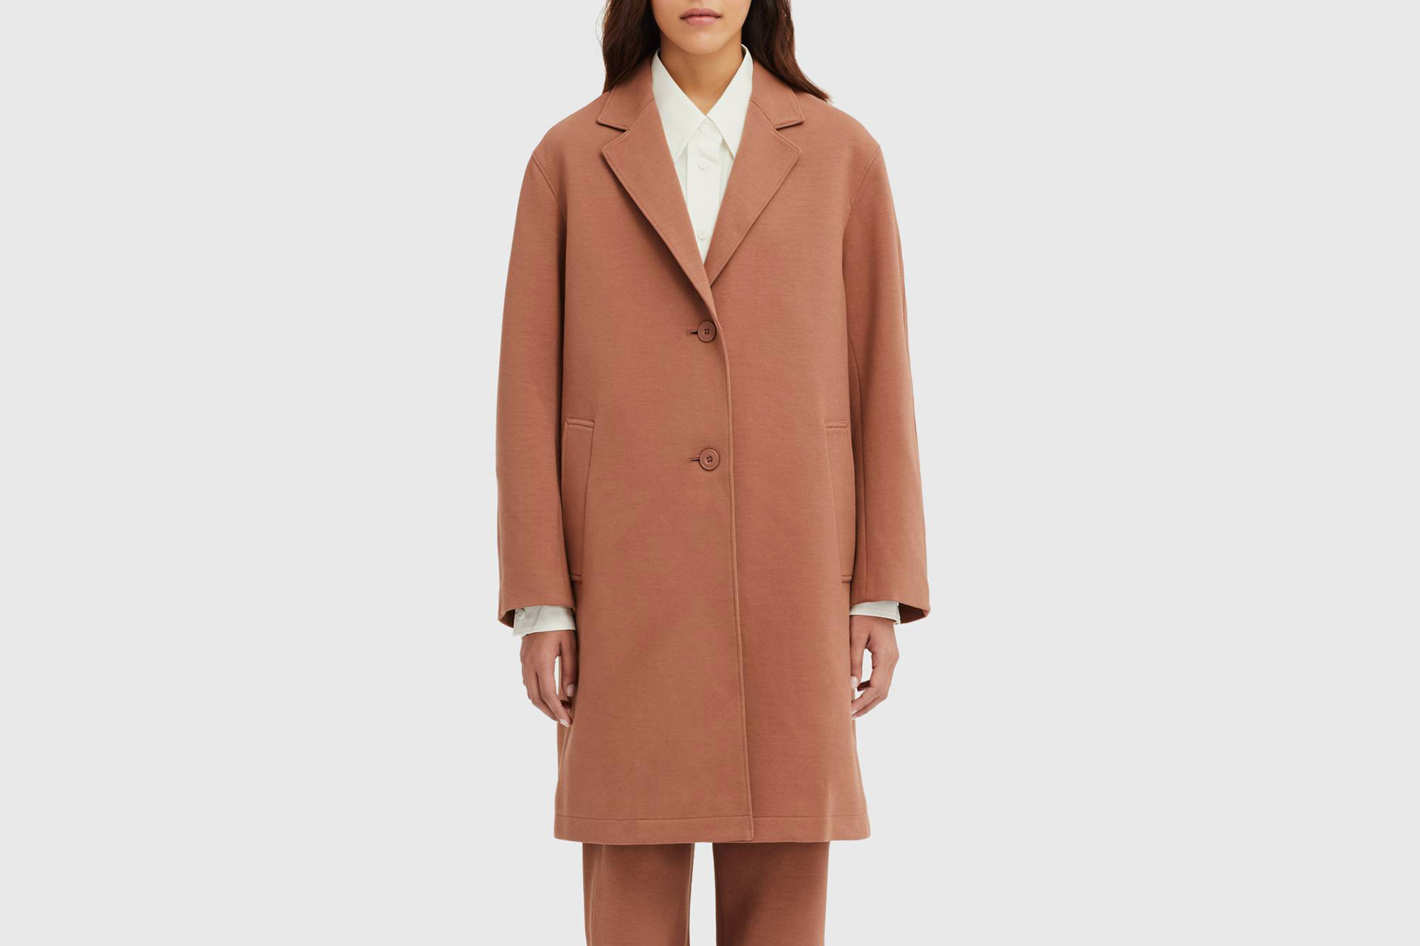 Uniqlo Women's U Double Face Coat